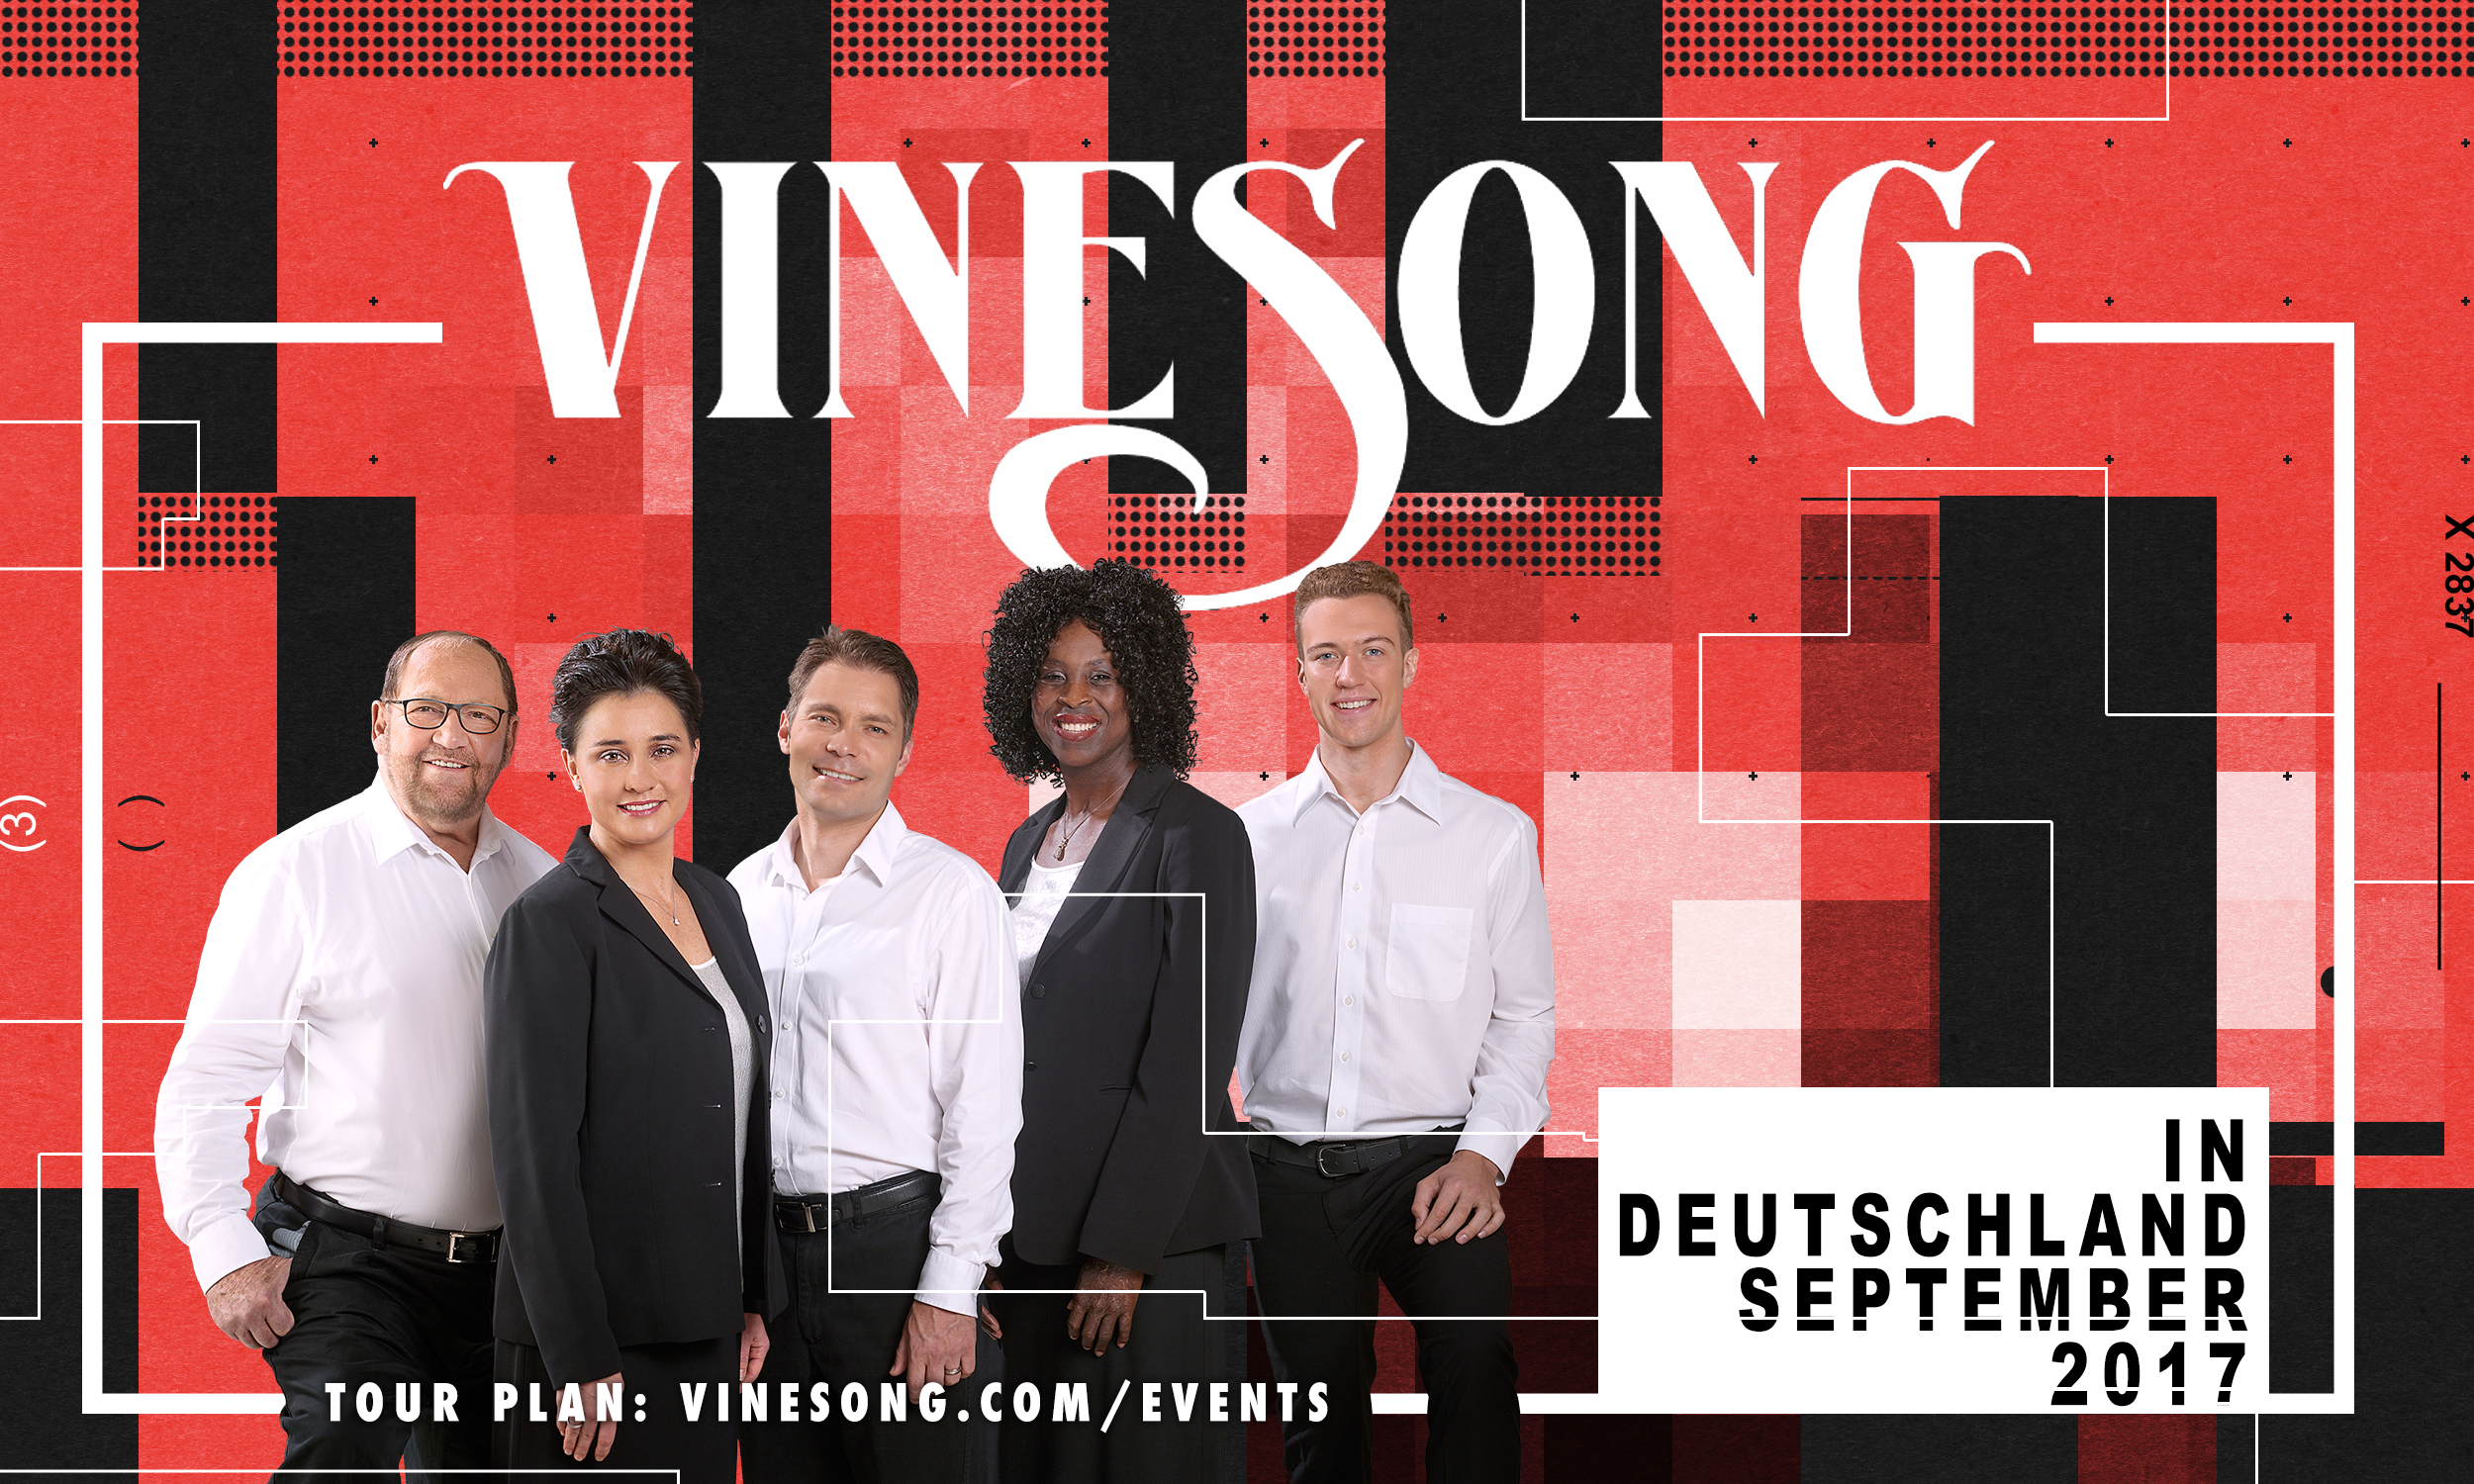 Vinesong in Germany 2017